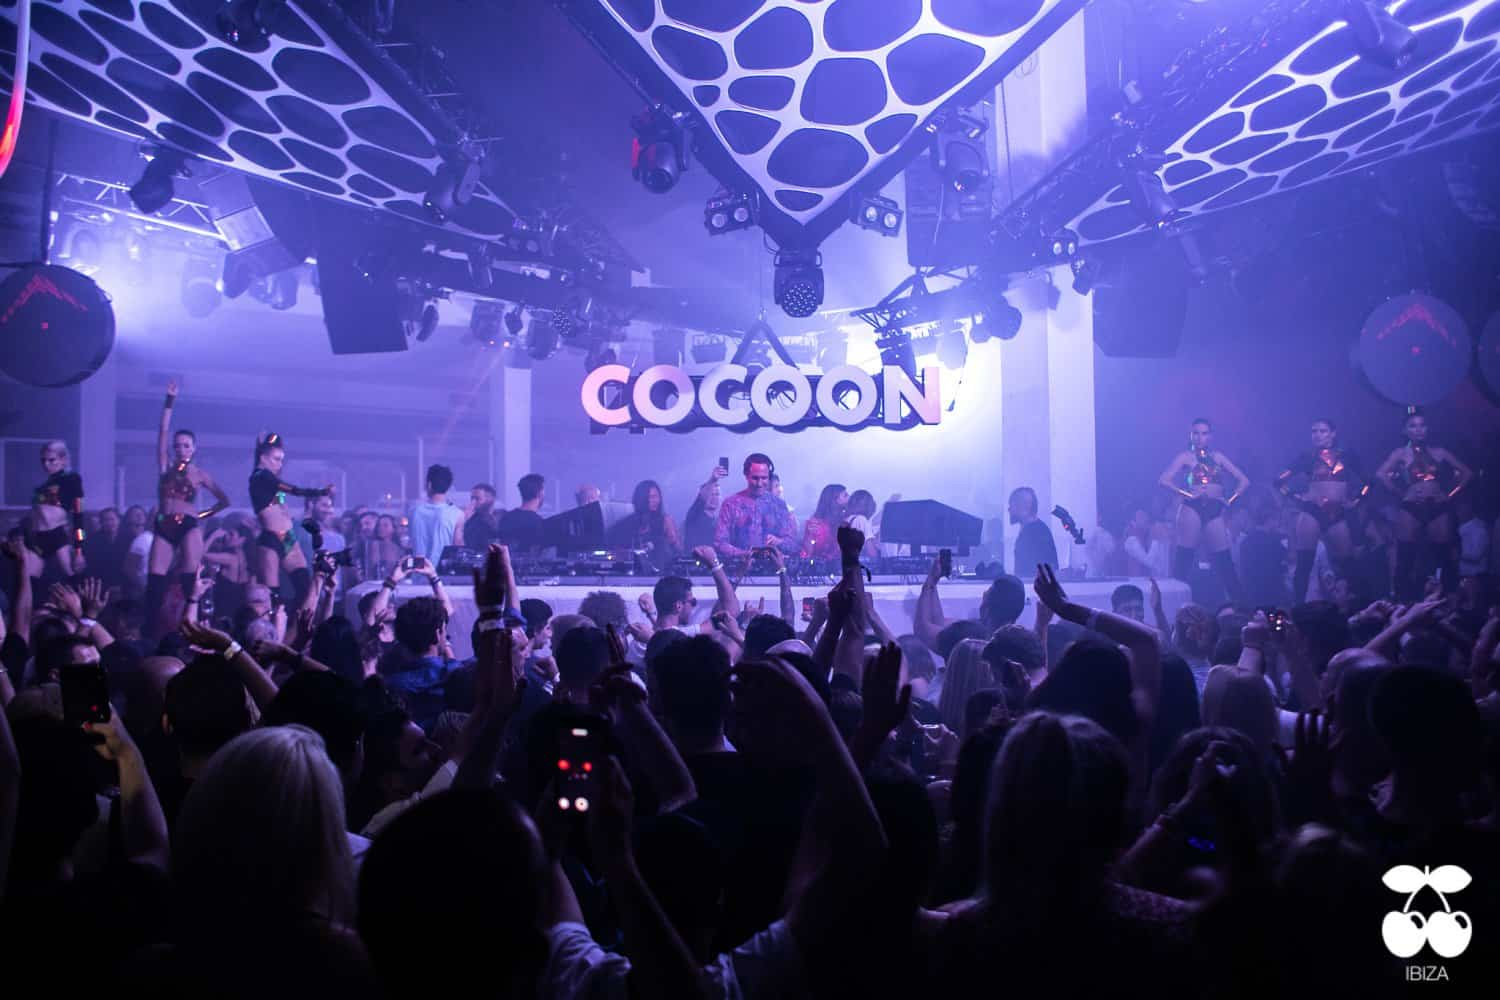 Cocoon_5 3